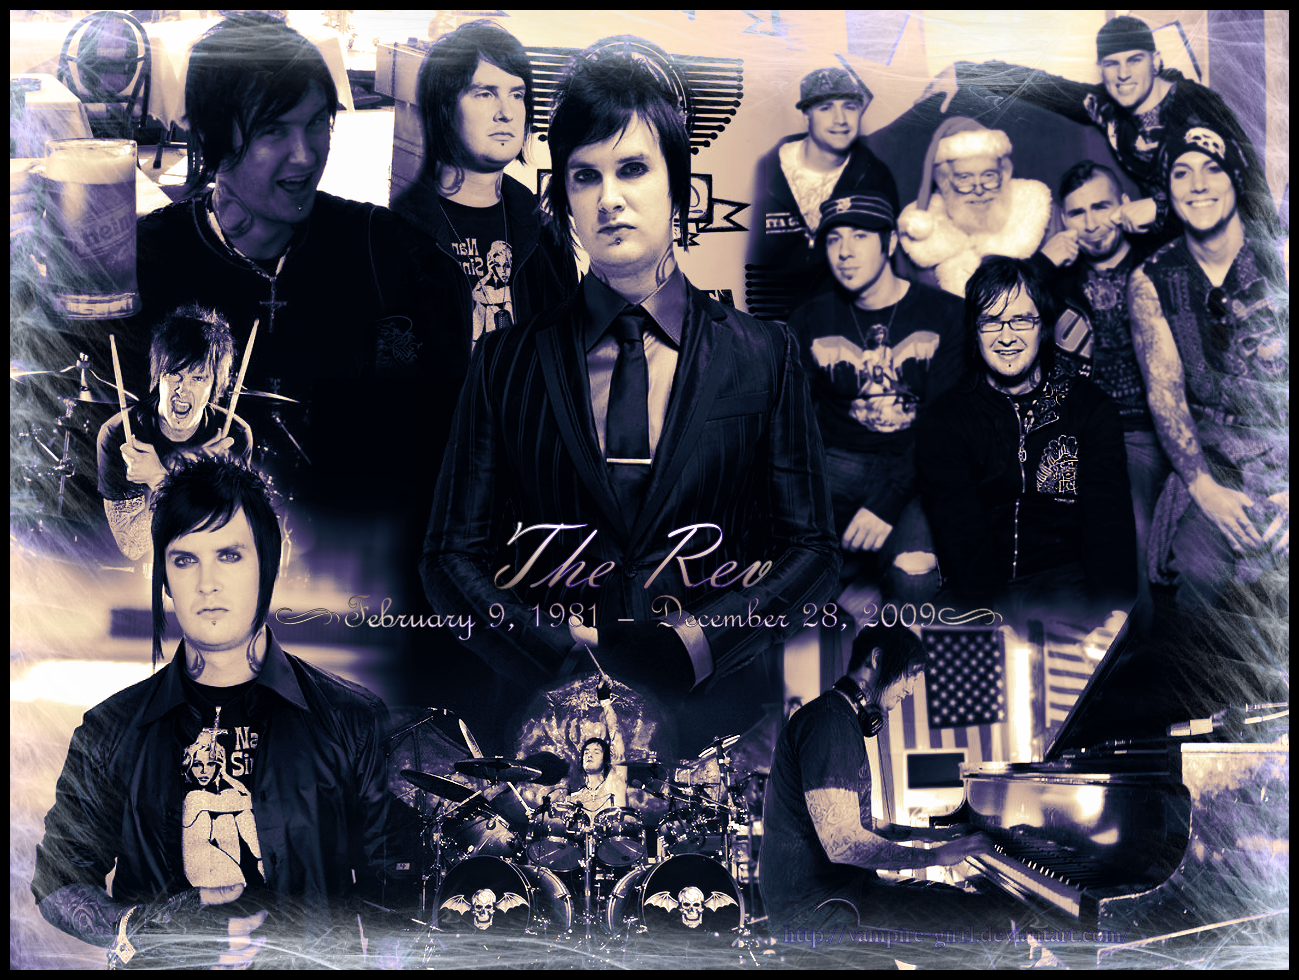 the rev images Rev \m HD wallpaper and background photos 28185212 1299x980